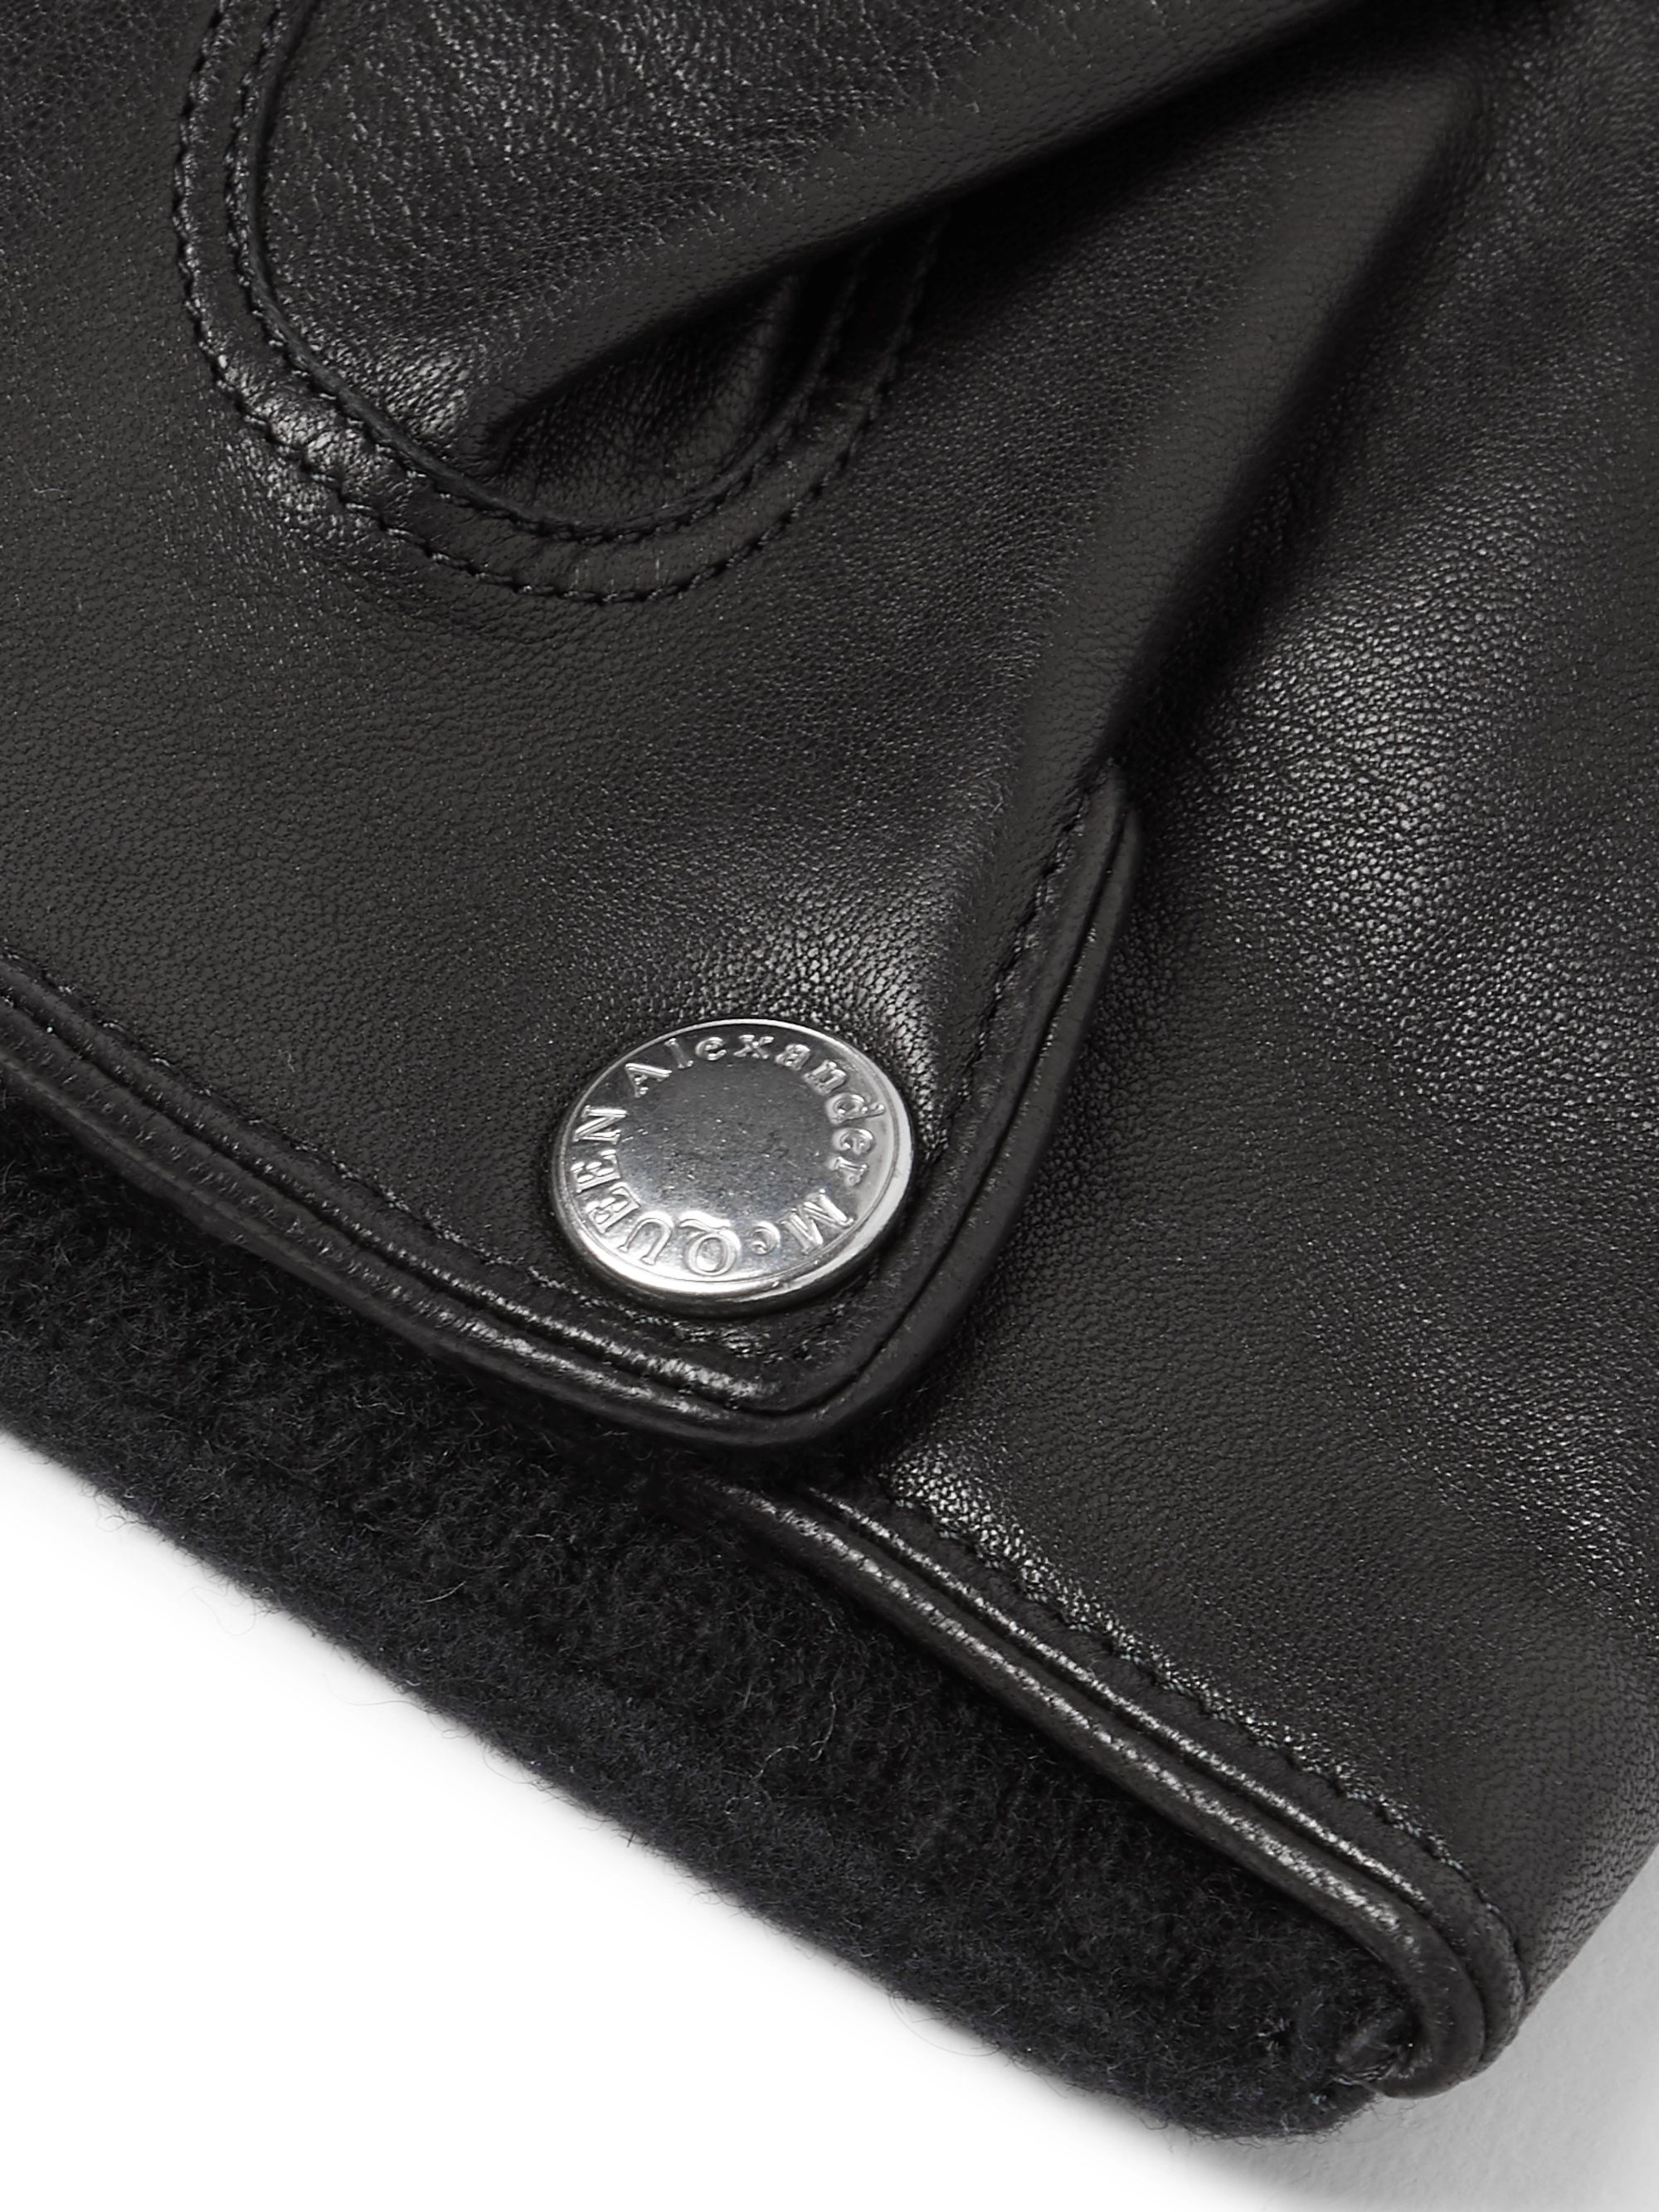 Alexander McQueen Cashmere-Lined Leather and Wool-Felt Gloves